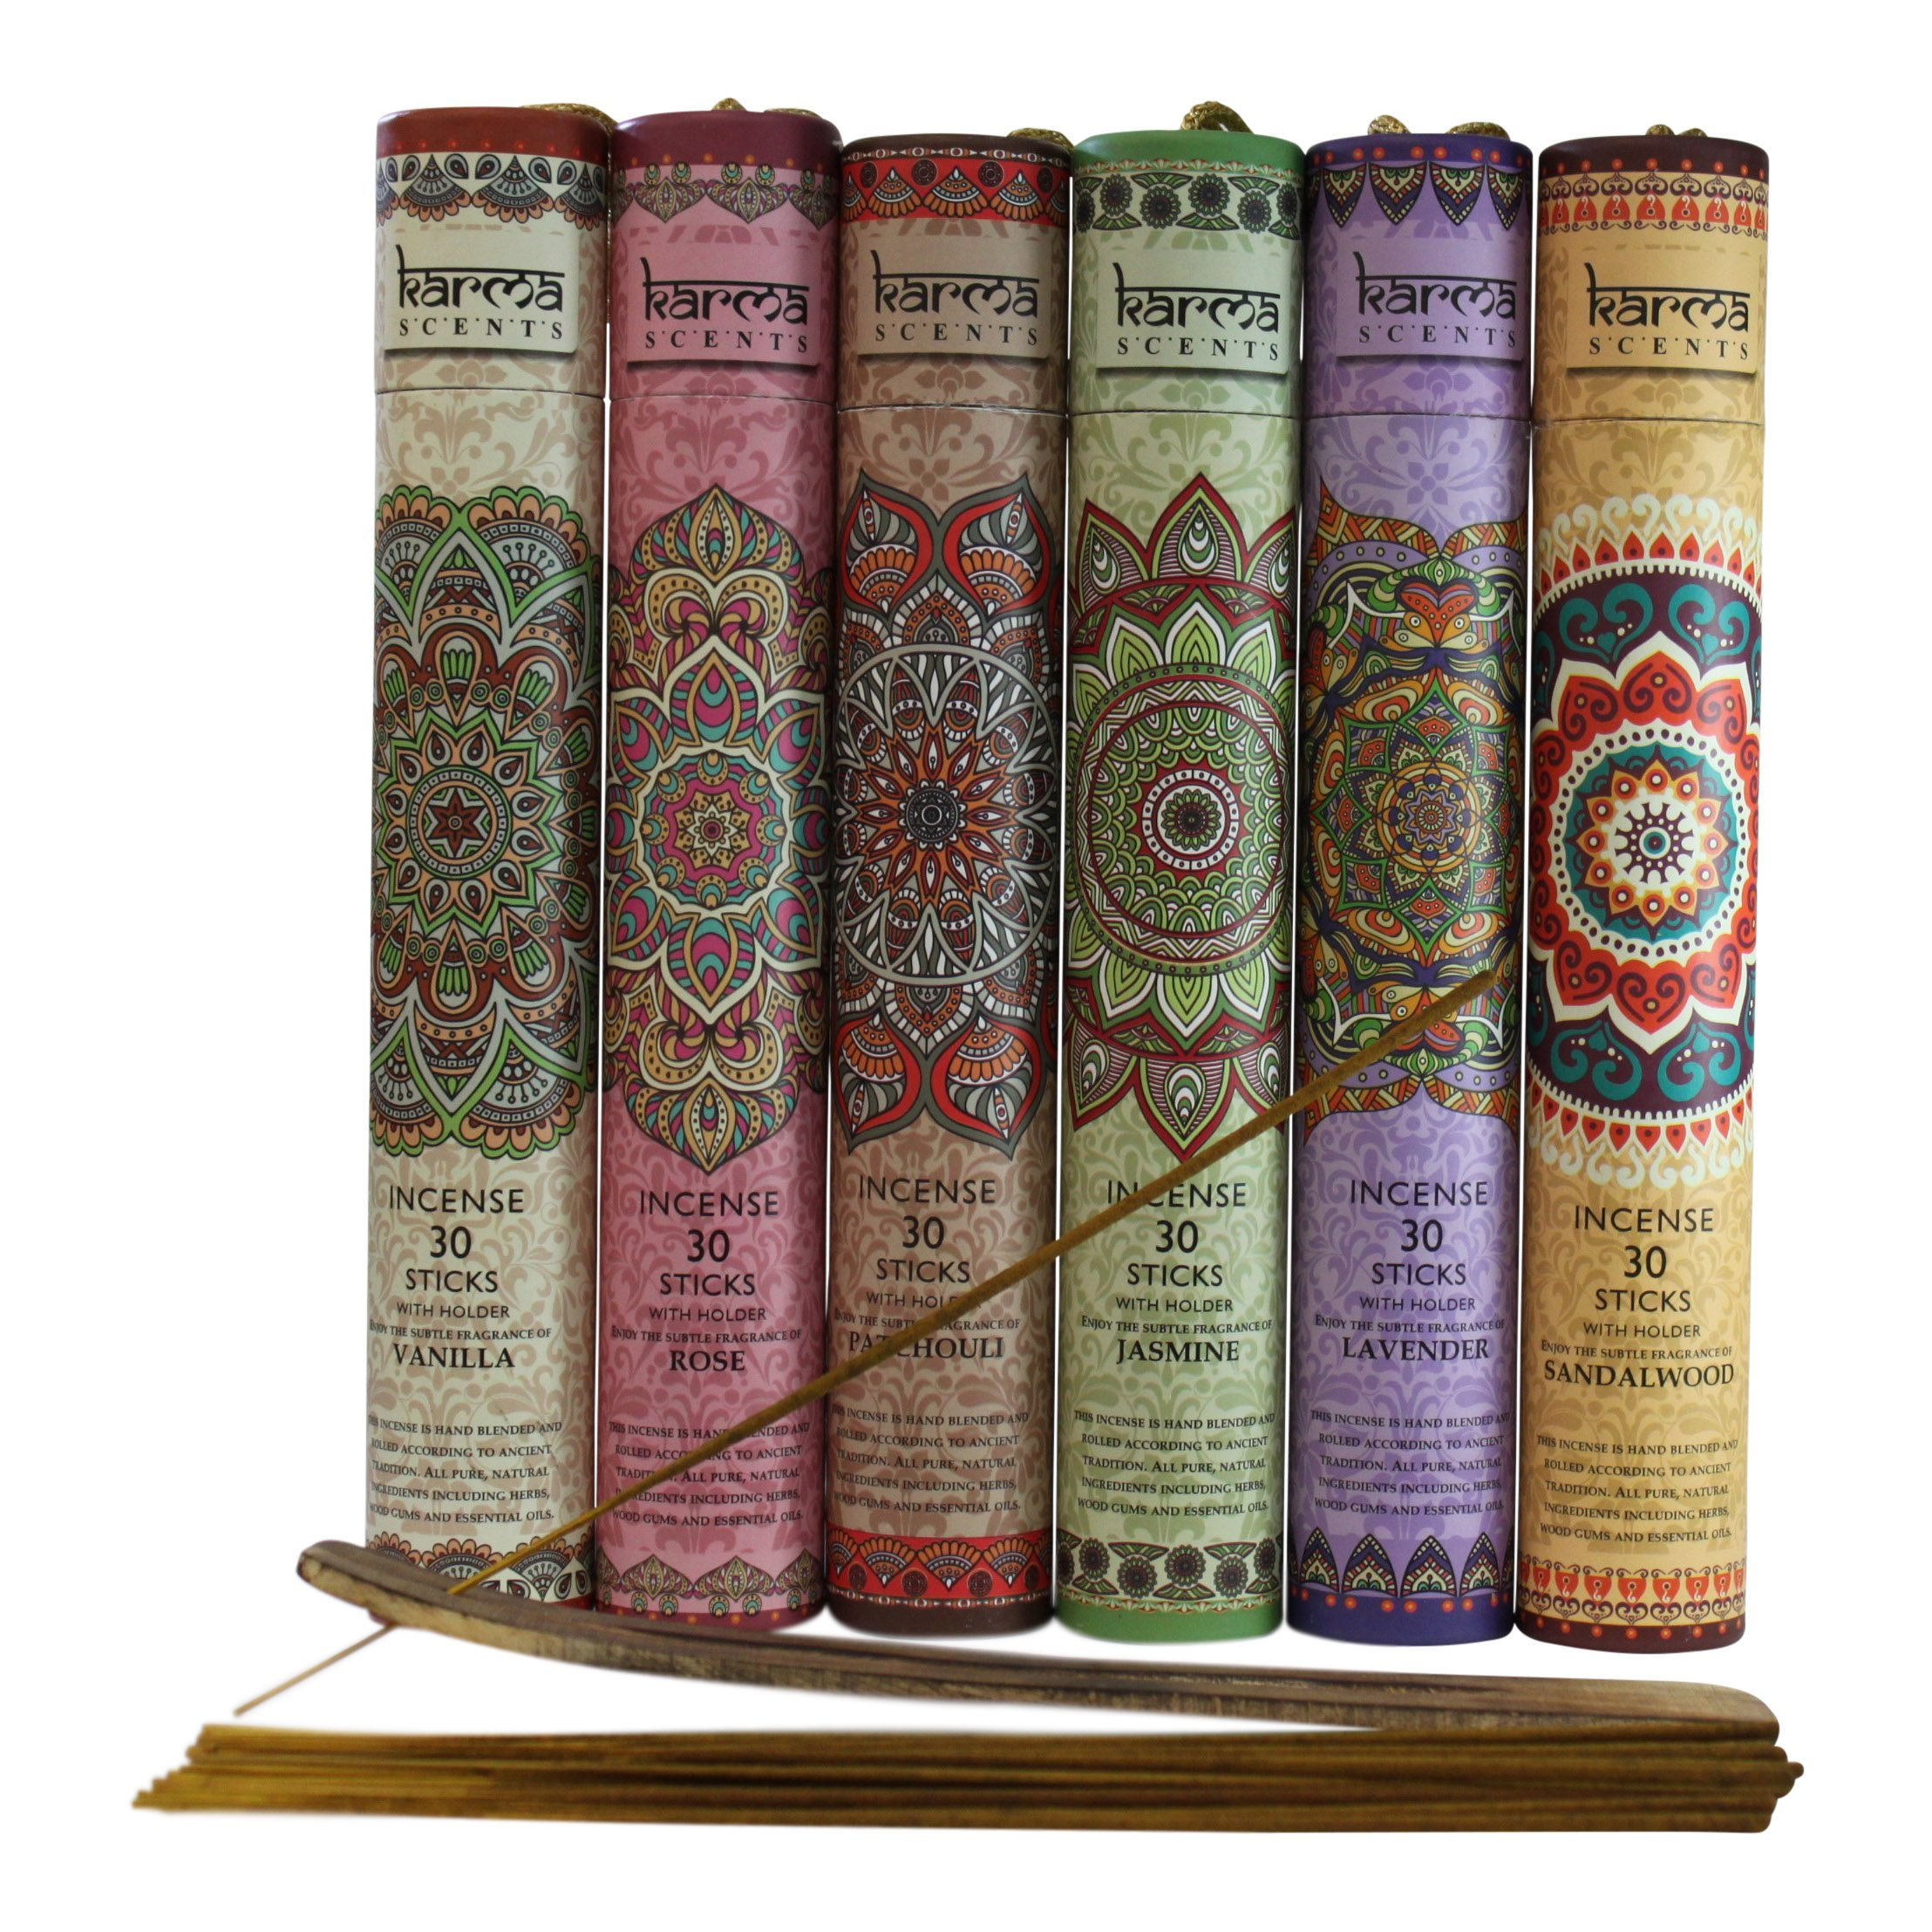 Karma Scents Premium Incense Sticks, Lavender, Sandalwood, Jasmine, Patchouli, Rose, Vanilla, Variety Gift Pack 180 Sticks, Includes a Holder in Each Box